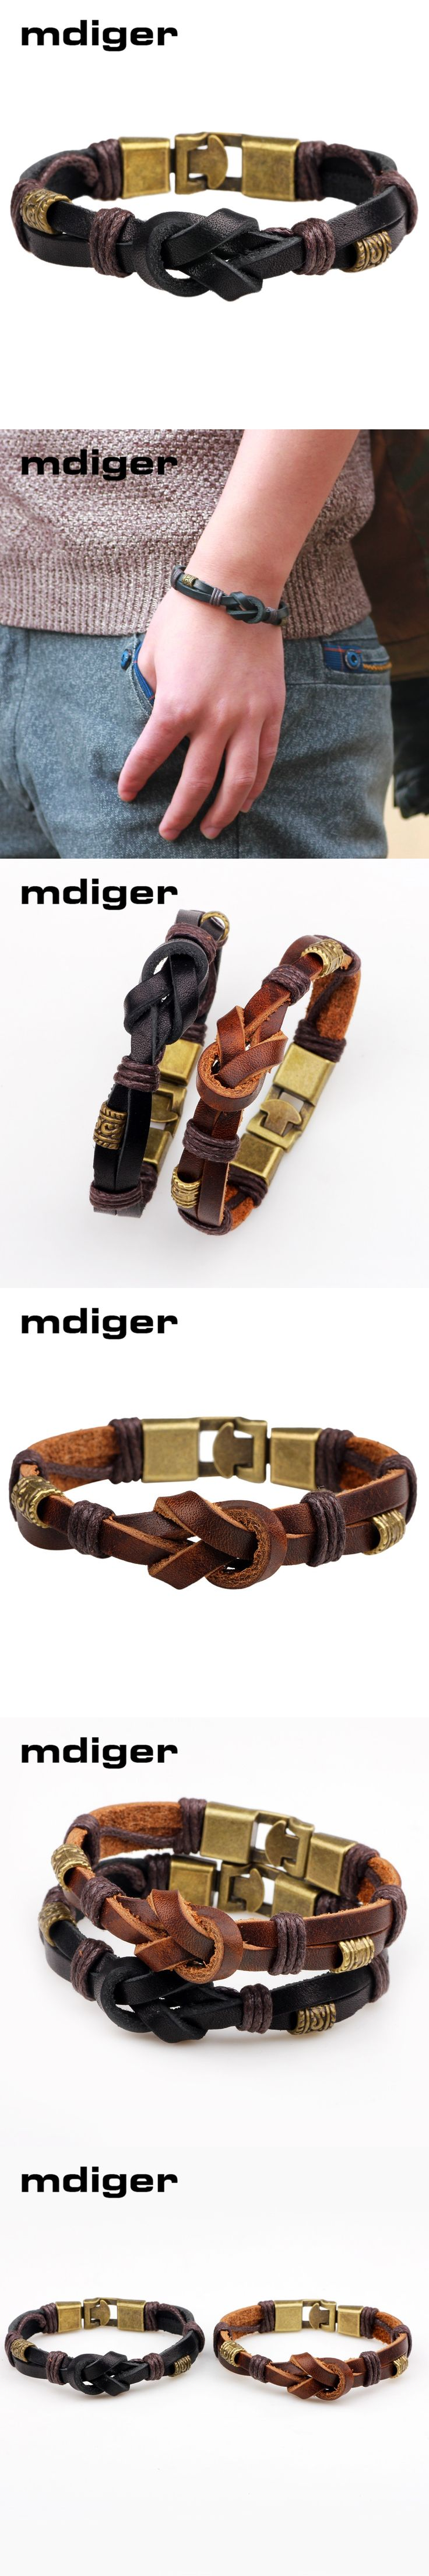 Mdiger Brand Classic Jewelry PU Black Leather Bracelet Men Brown Bracelets Vintage Accessorrioes Bracelets Bangles in Two Colors